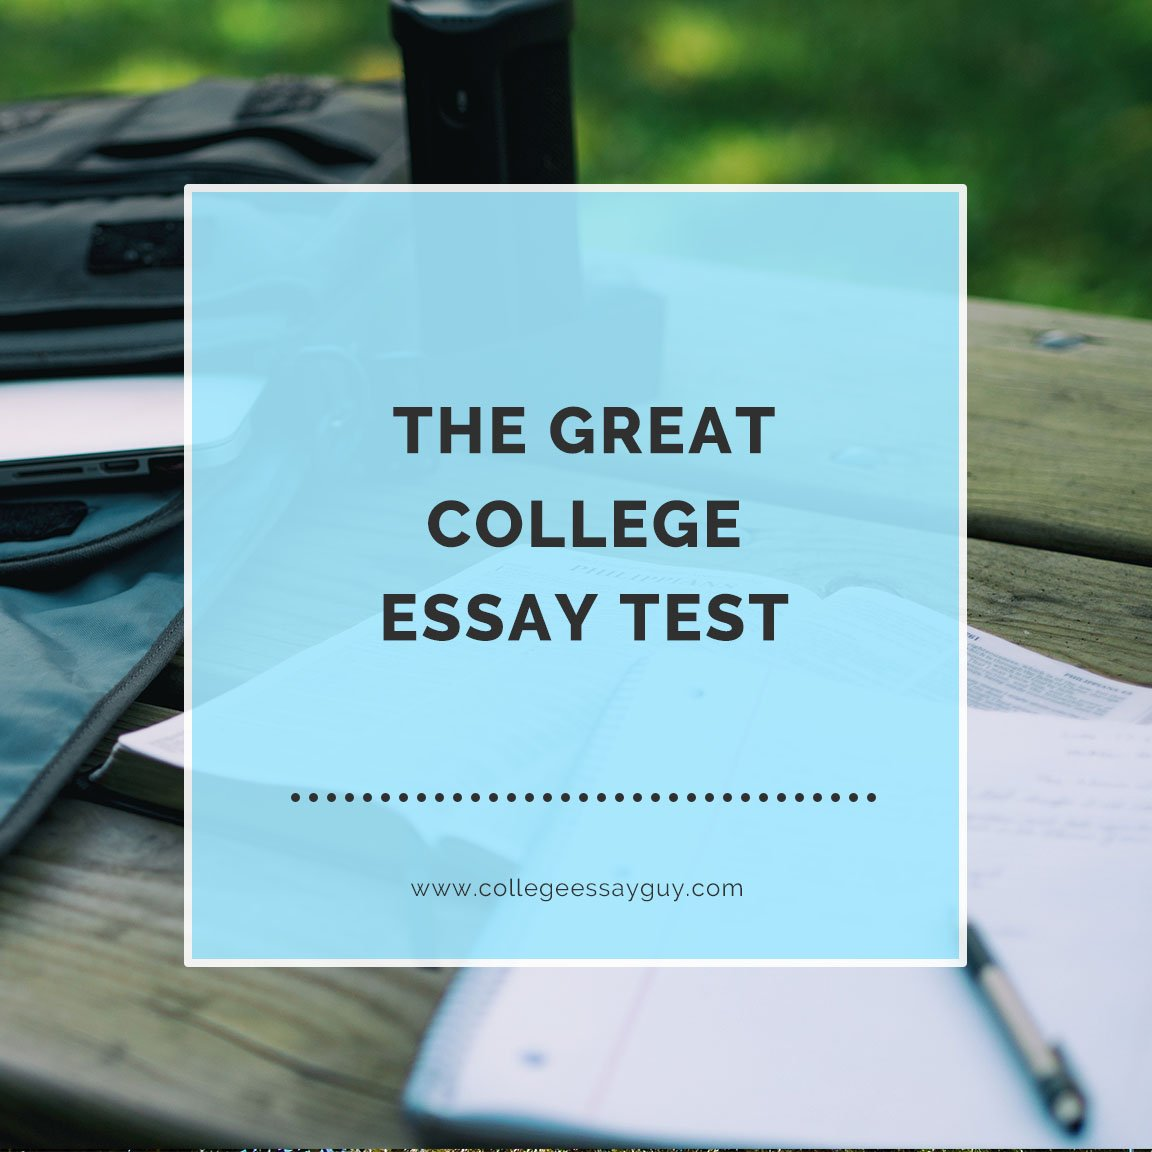 Put your essay up against what I think makes a great college essay. Take the great college essay test: goo.gl/a4SNrj